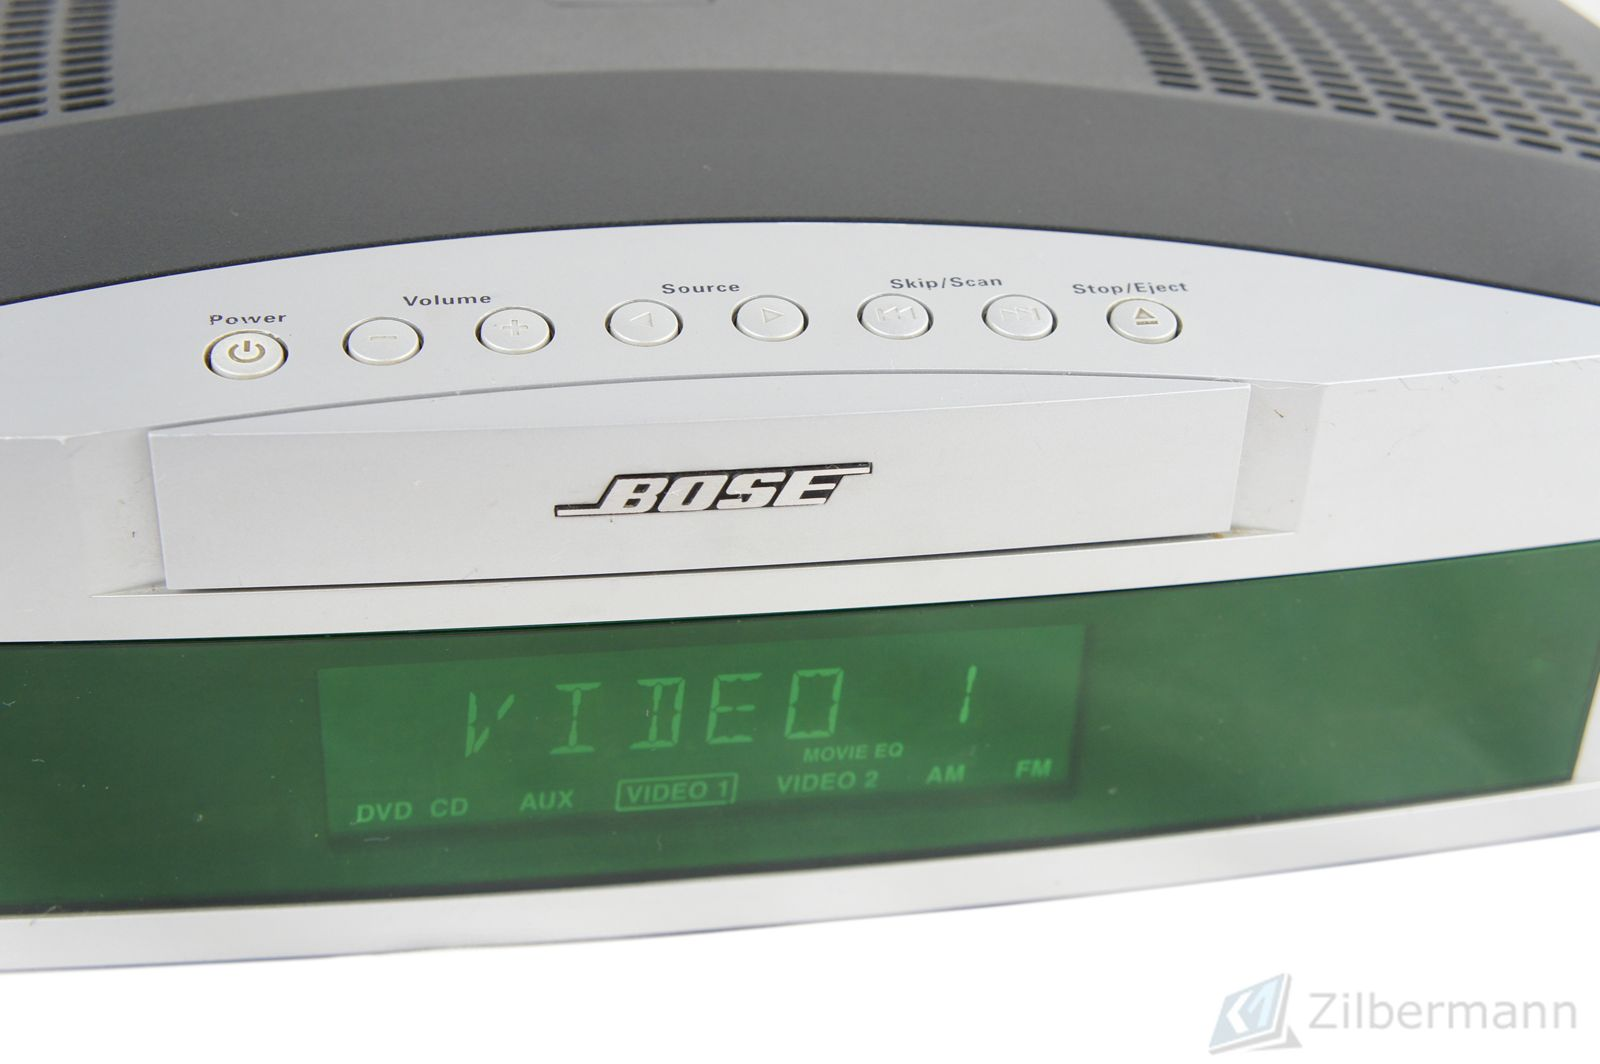 Bose_321_3-2-1_Series_I_Media_Center_03